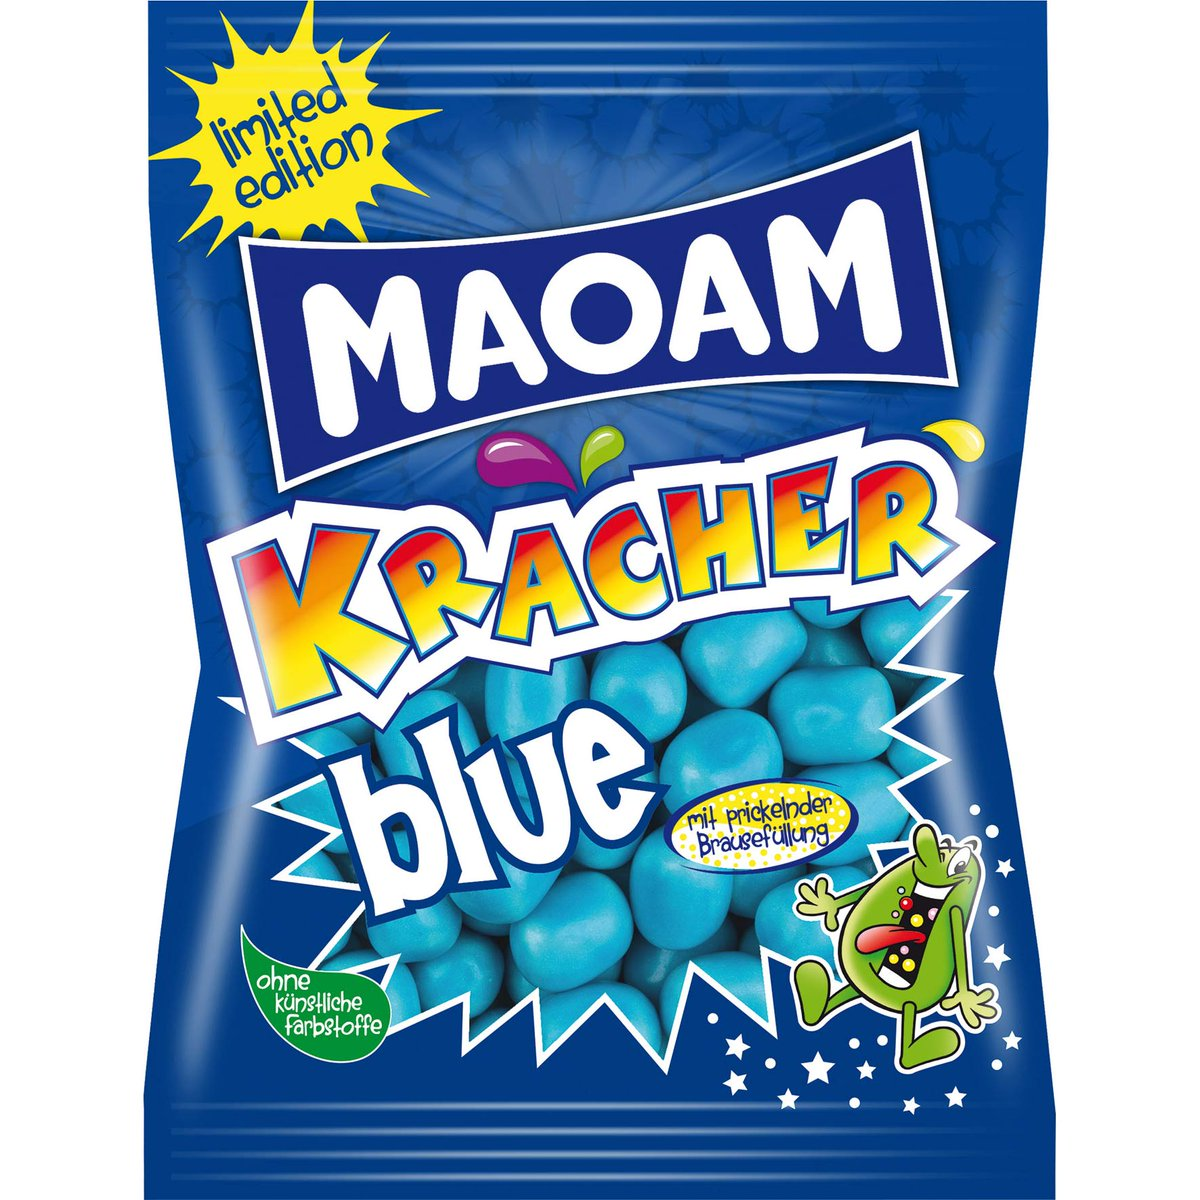 Haribo kracher blue